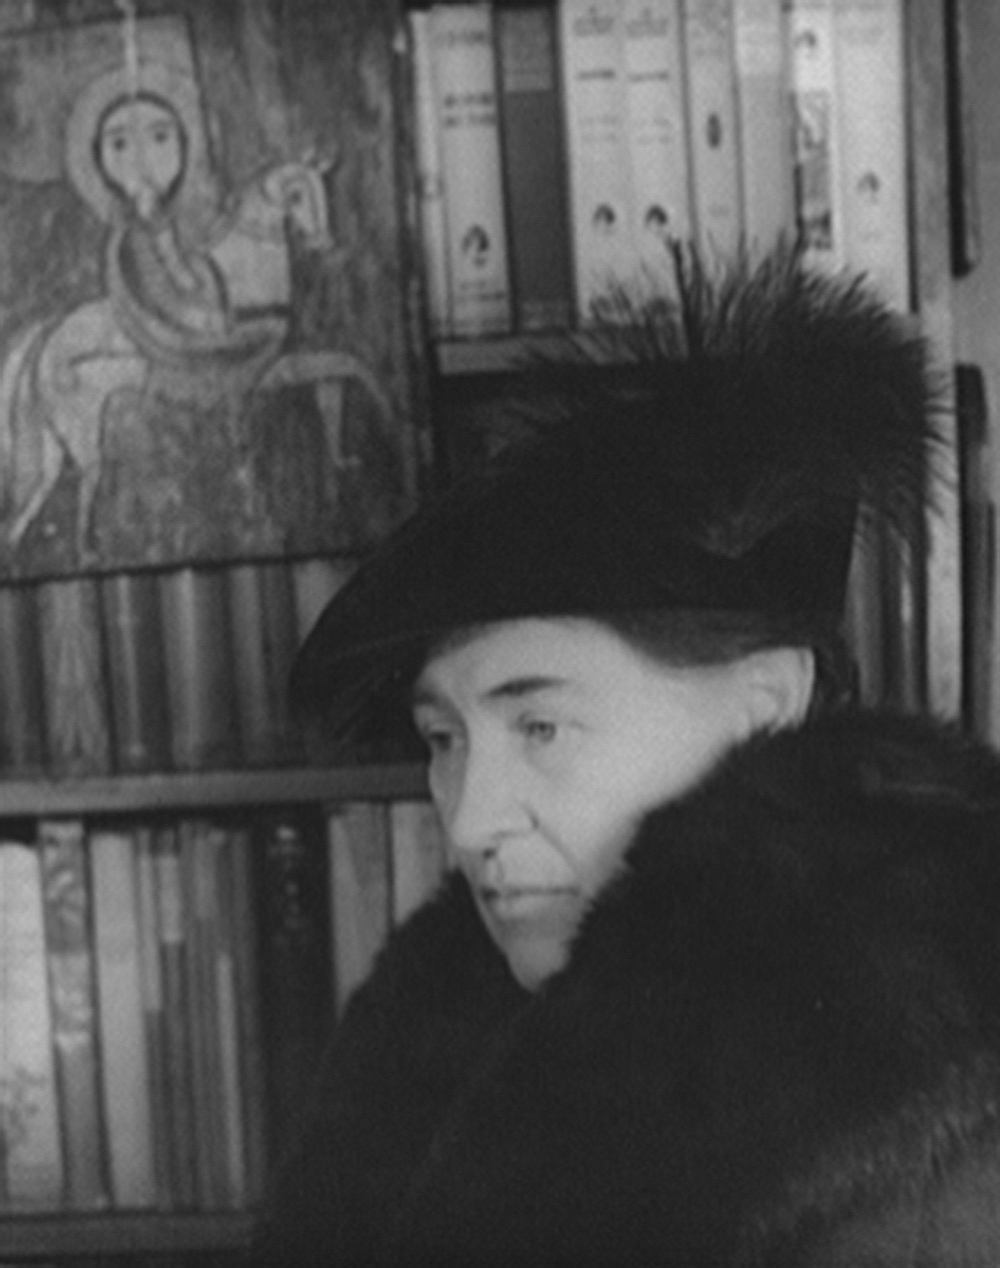 Willa Cather, 1936. Photograph by Carl Van Vechten. Library of Congress, Prints and Photographs Division, Carl Van Vechten Collection.